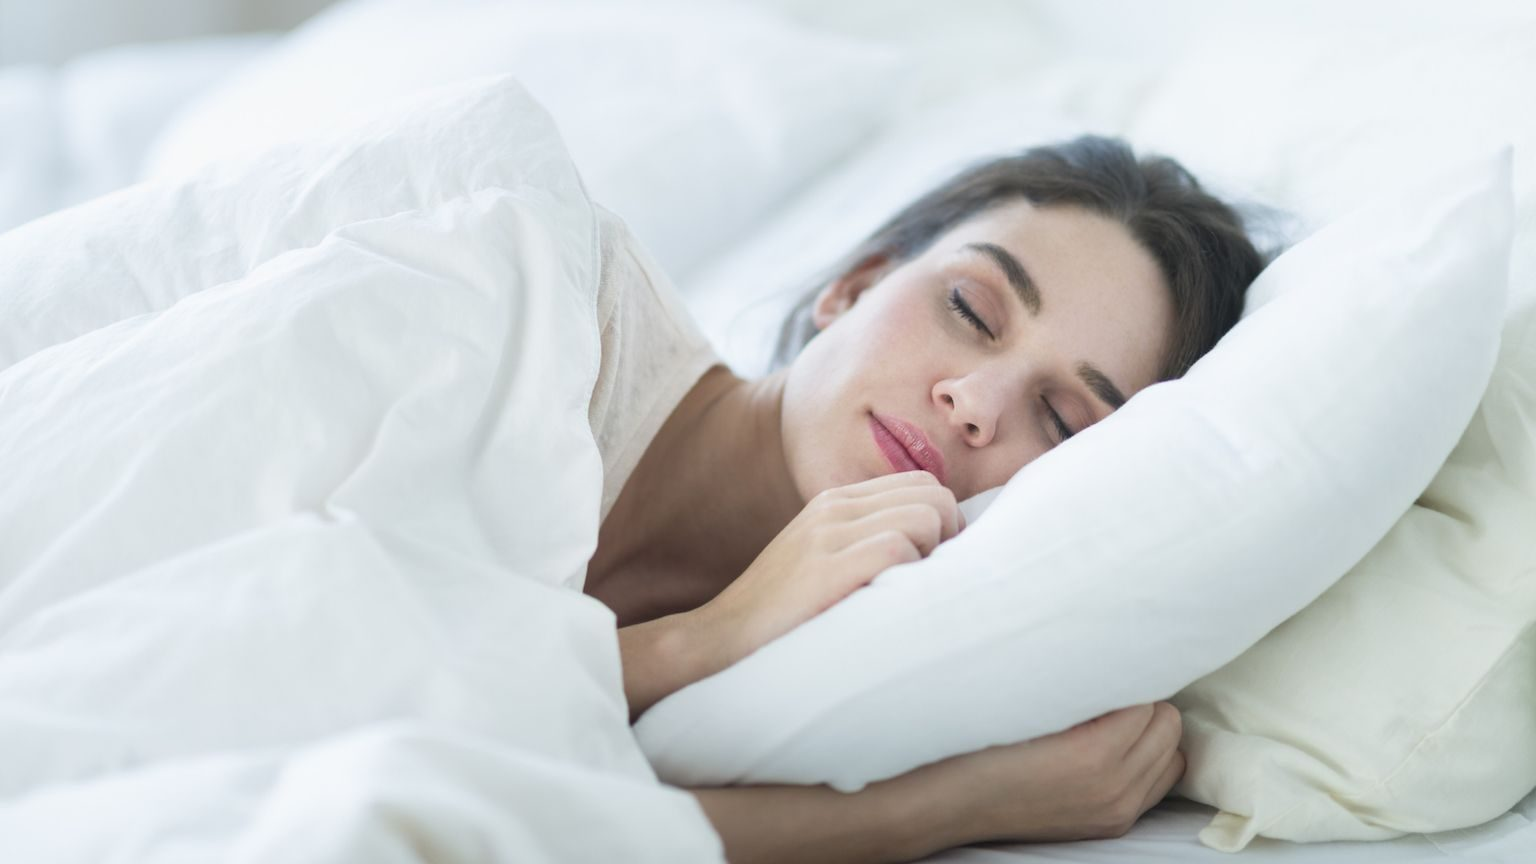 Woman sleeping comfortably on soft white pillows